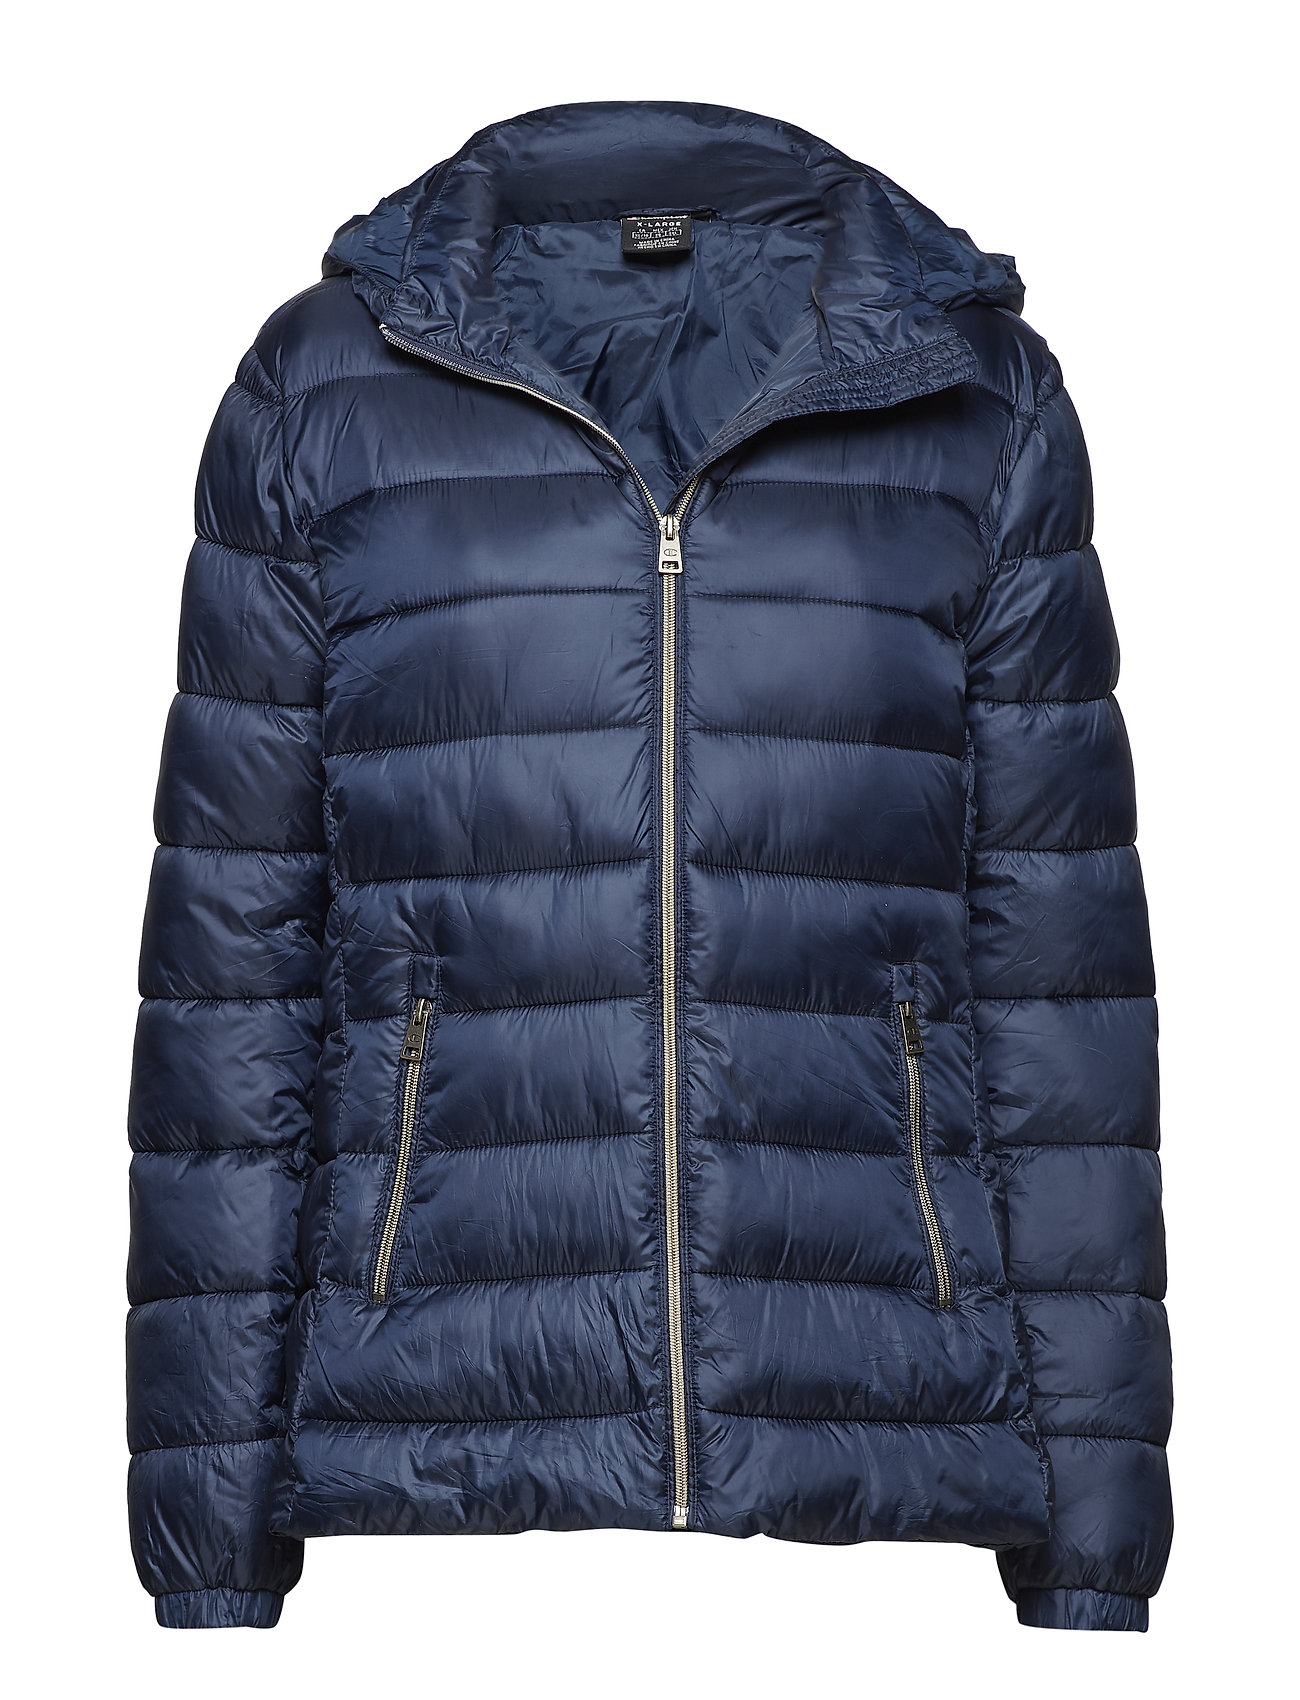 Canada Goose Camp Hooded Jacket Dam, S, Svart/Svar